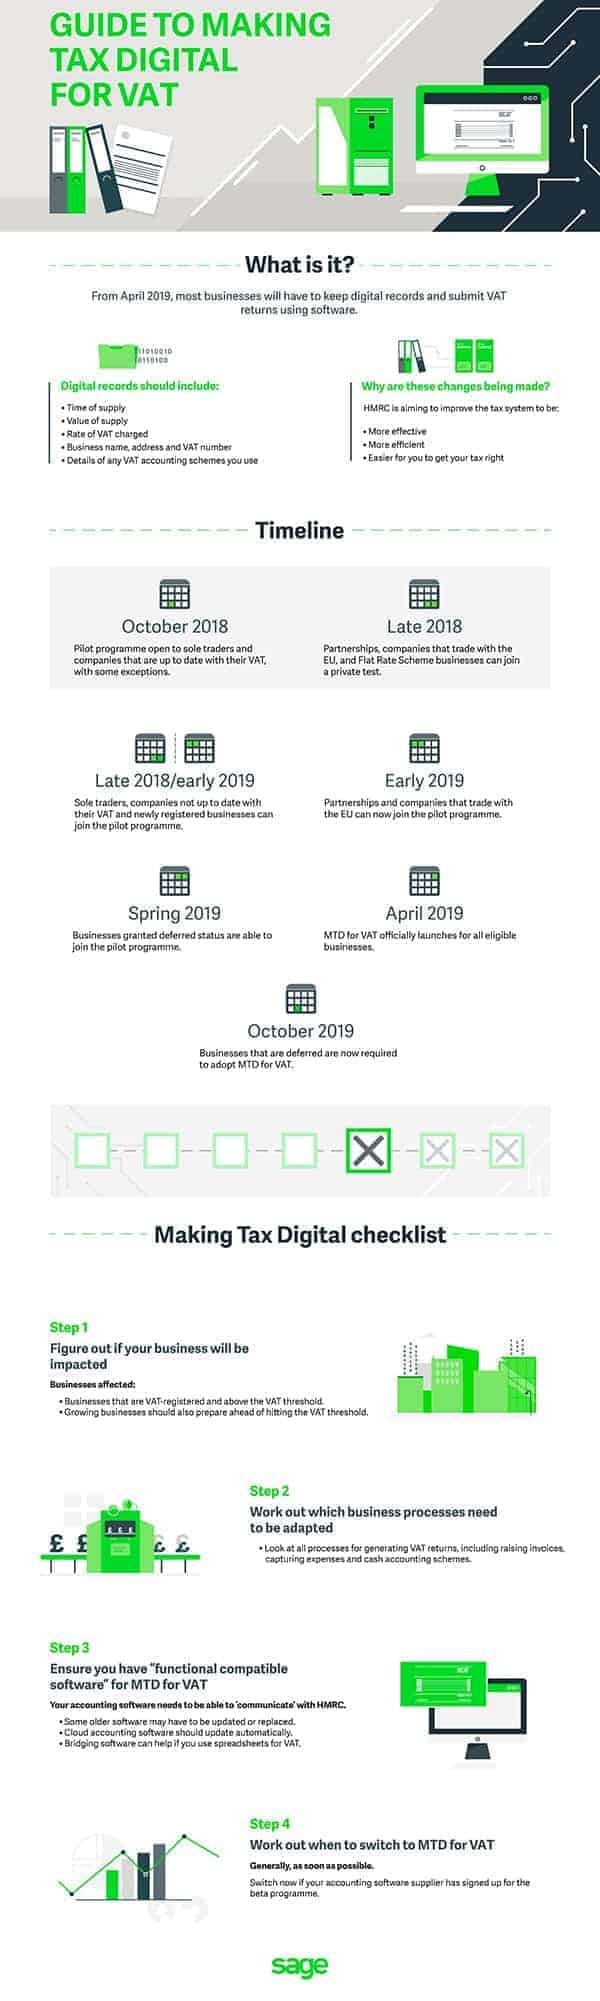 SAGE Guide to Making Tax Digital for VAT